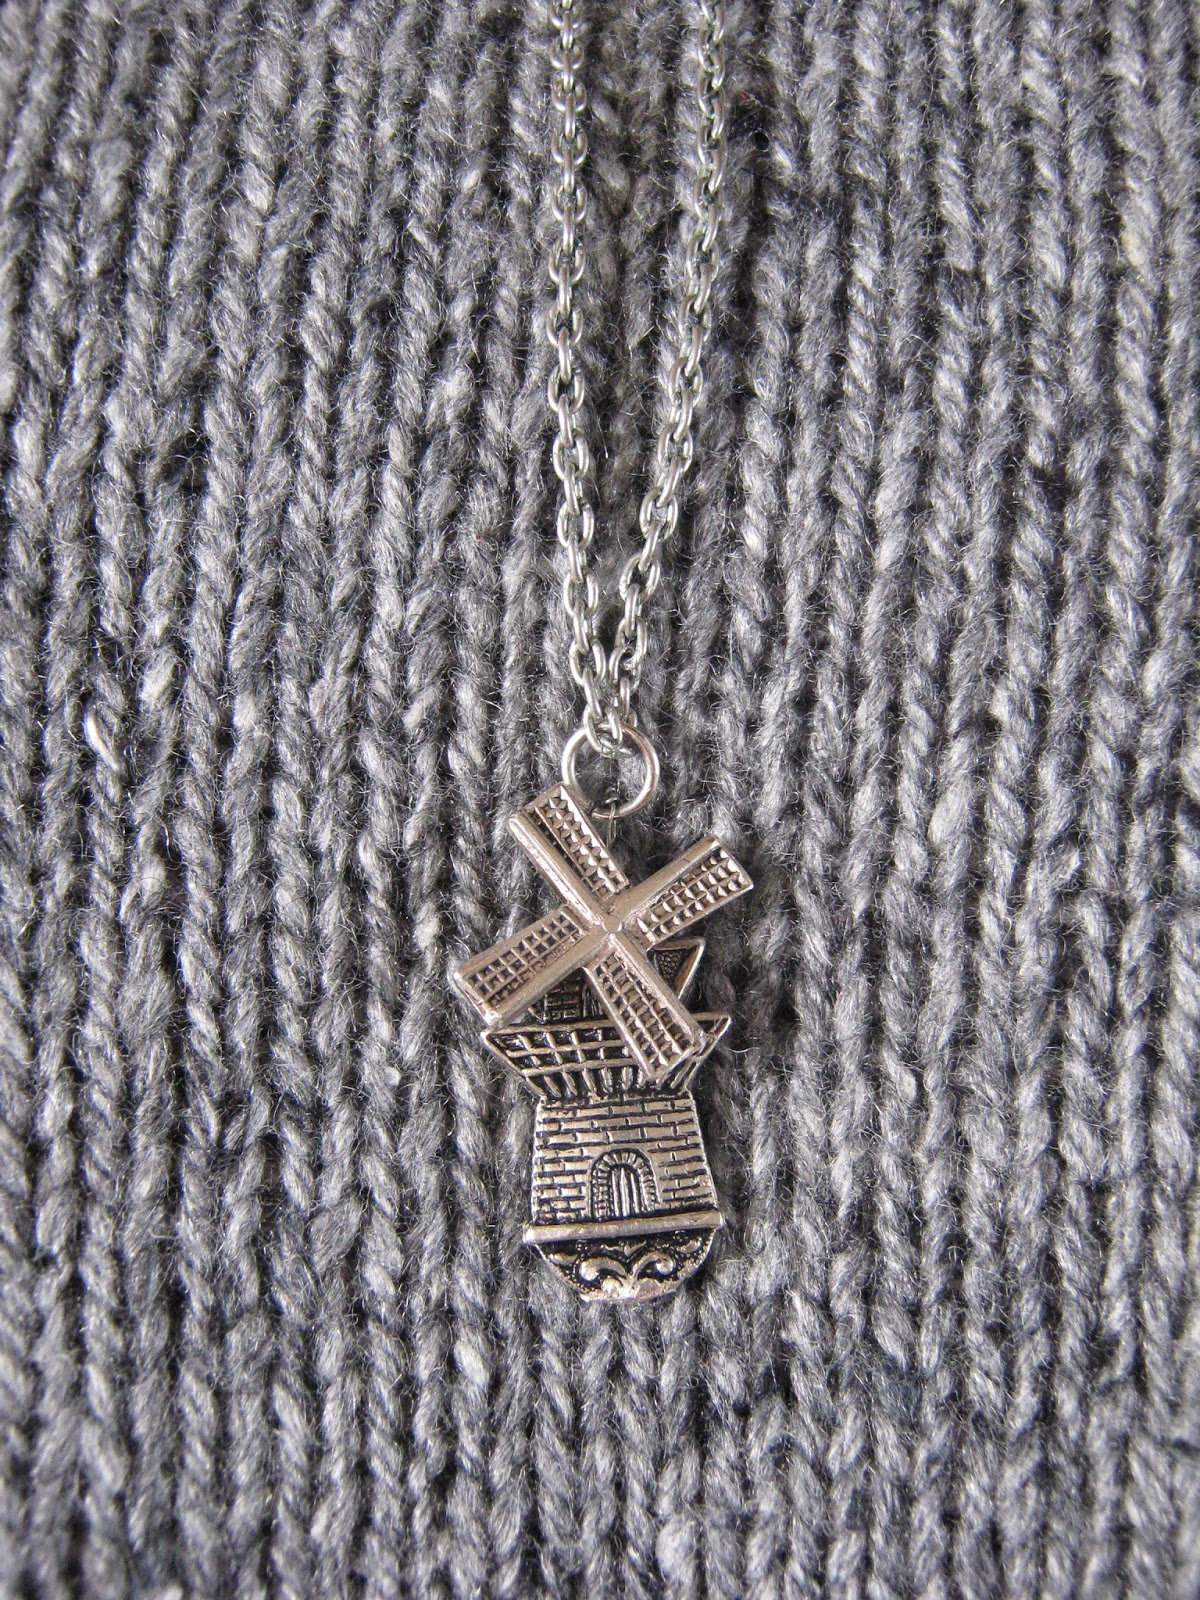 Windmill Spoon Necklace